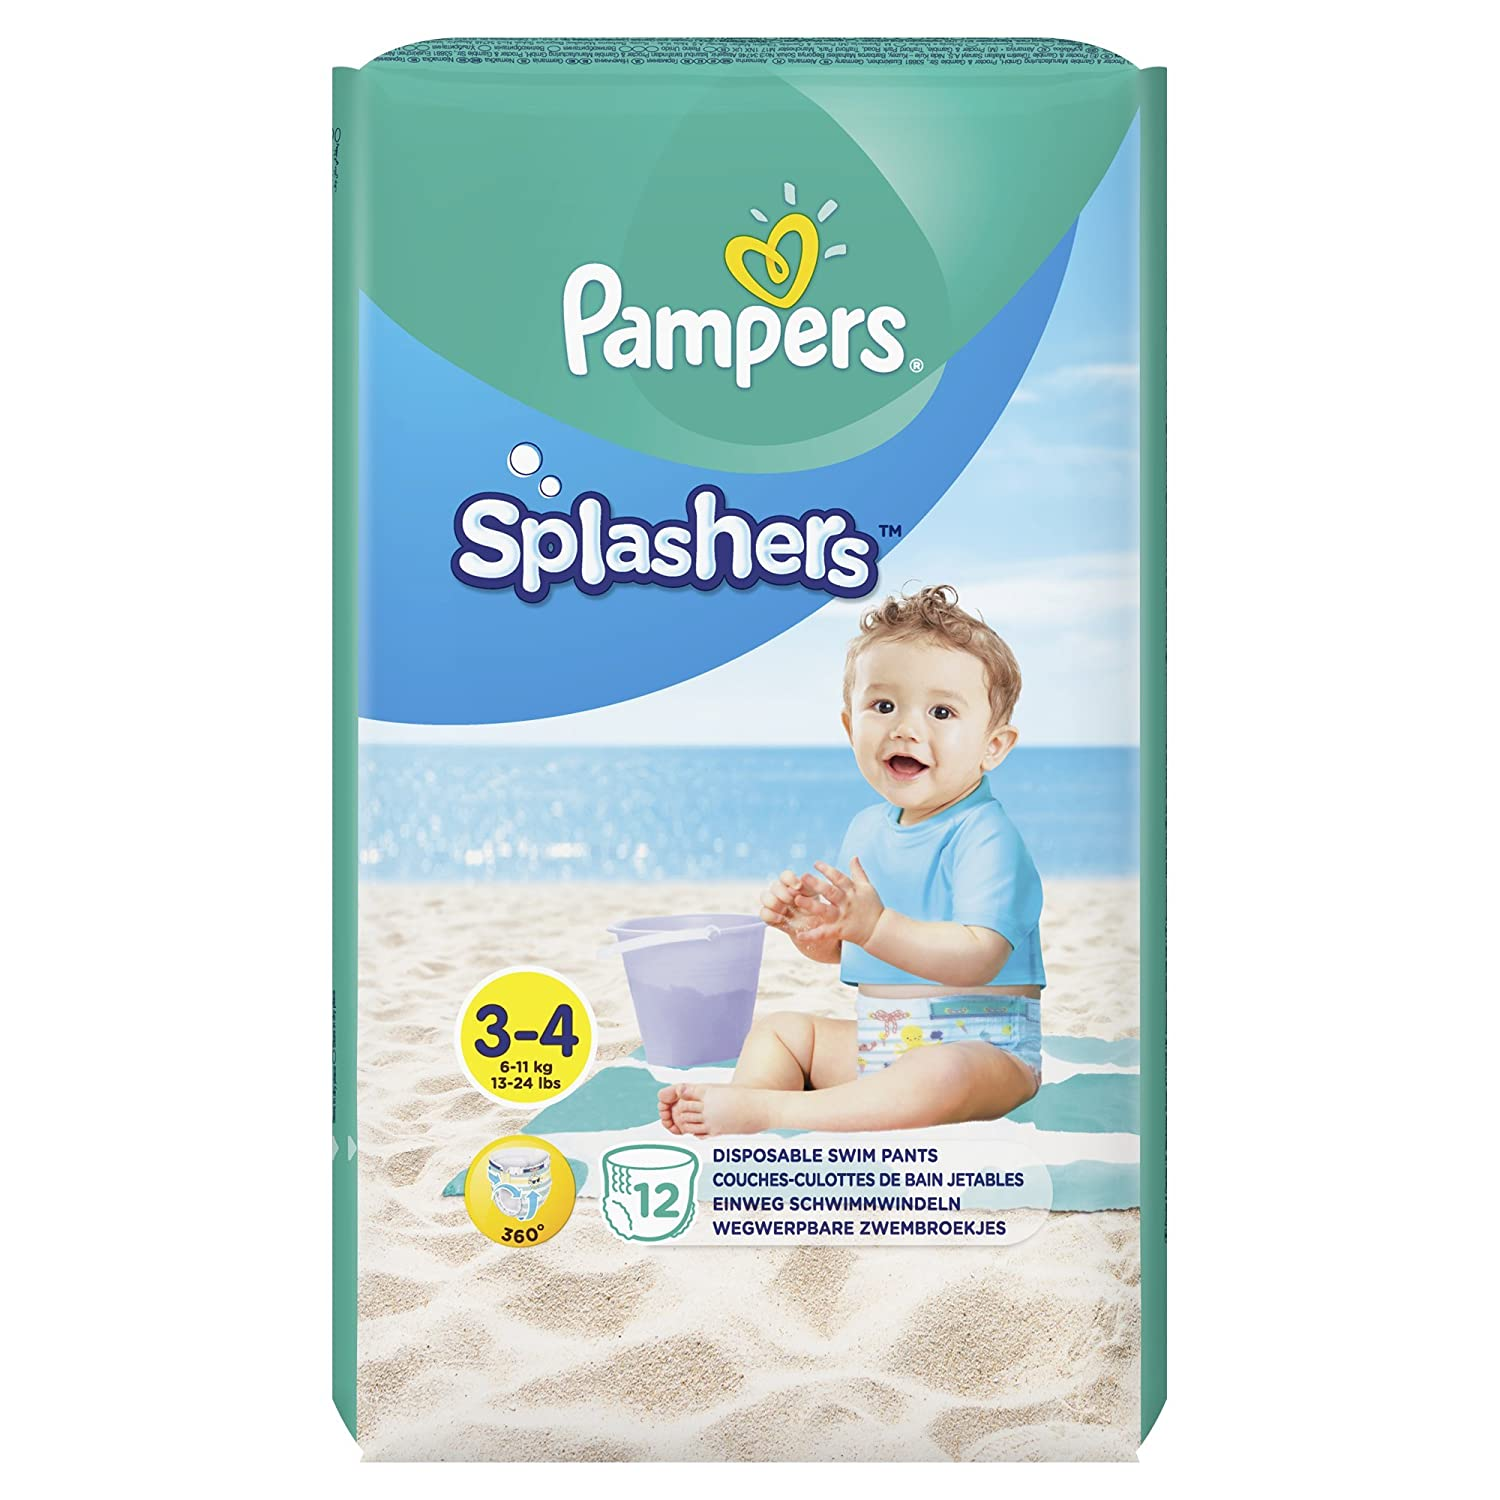 Pampers Splashers Couches Culottes De Bain Jetables Taille 3 4 1